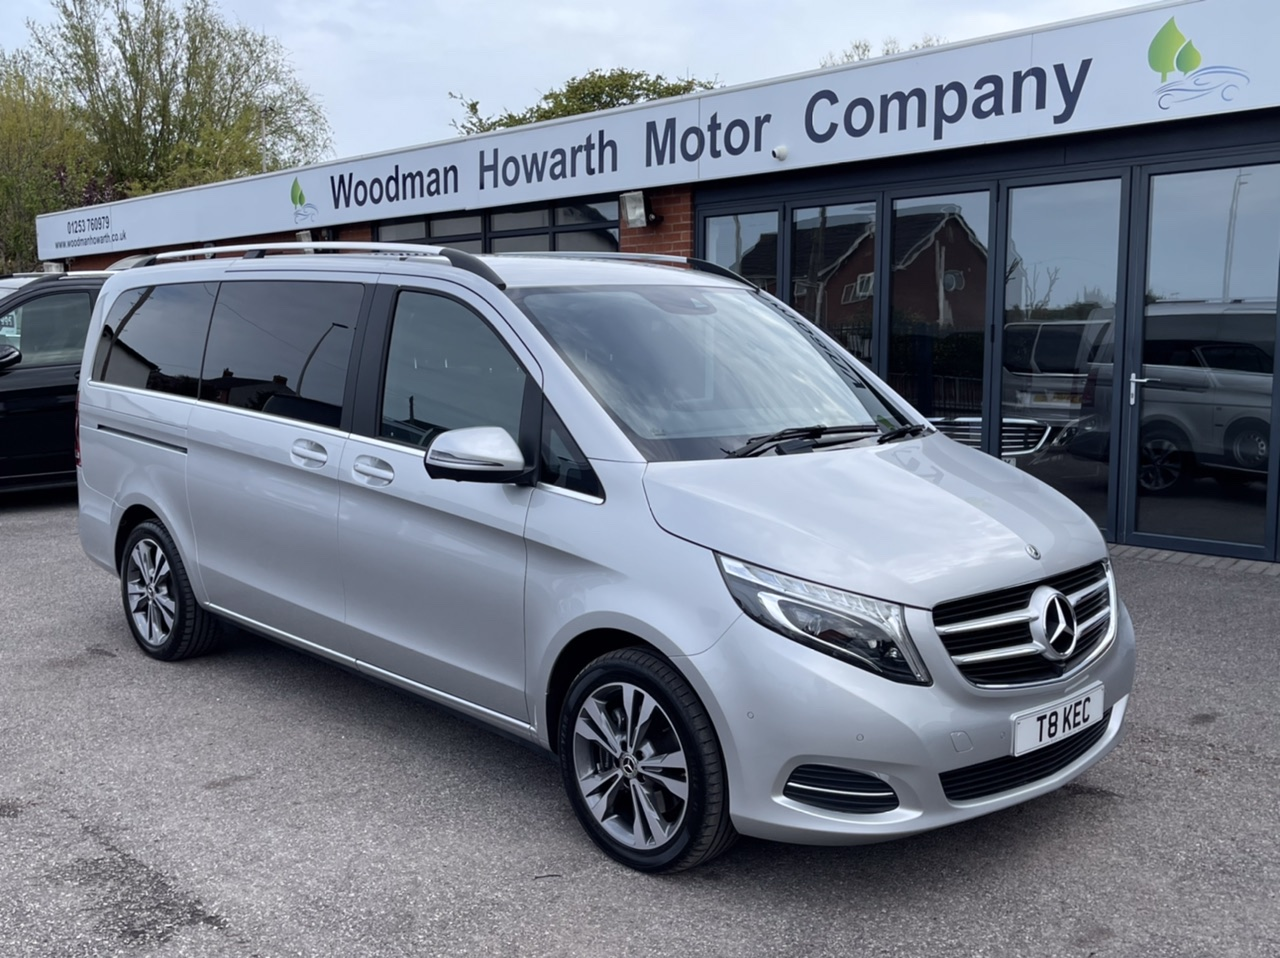 2018 68 MERCEDES BENZ V220D 163BHP SPORT LONG 7G-TRONIC AUTO - VATQ - Price Includes VAT - 360 Cameras - Electric Seat Memory Pack - Pan Roof